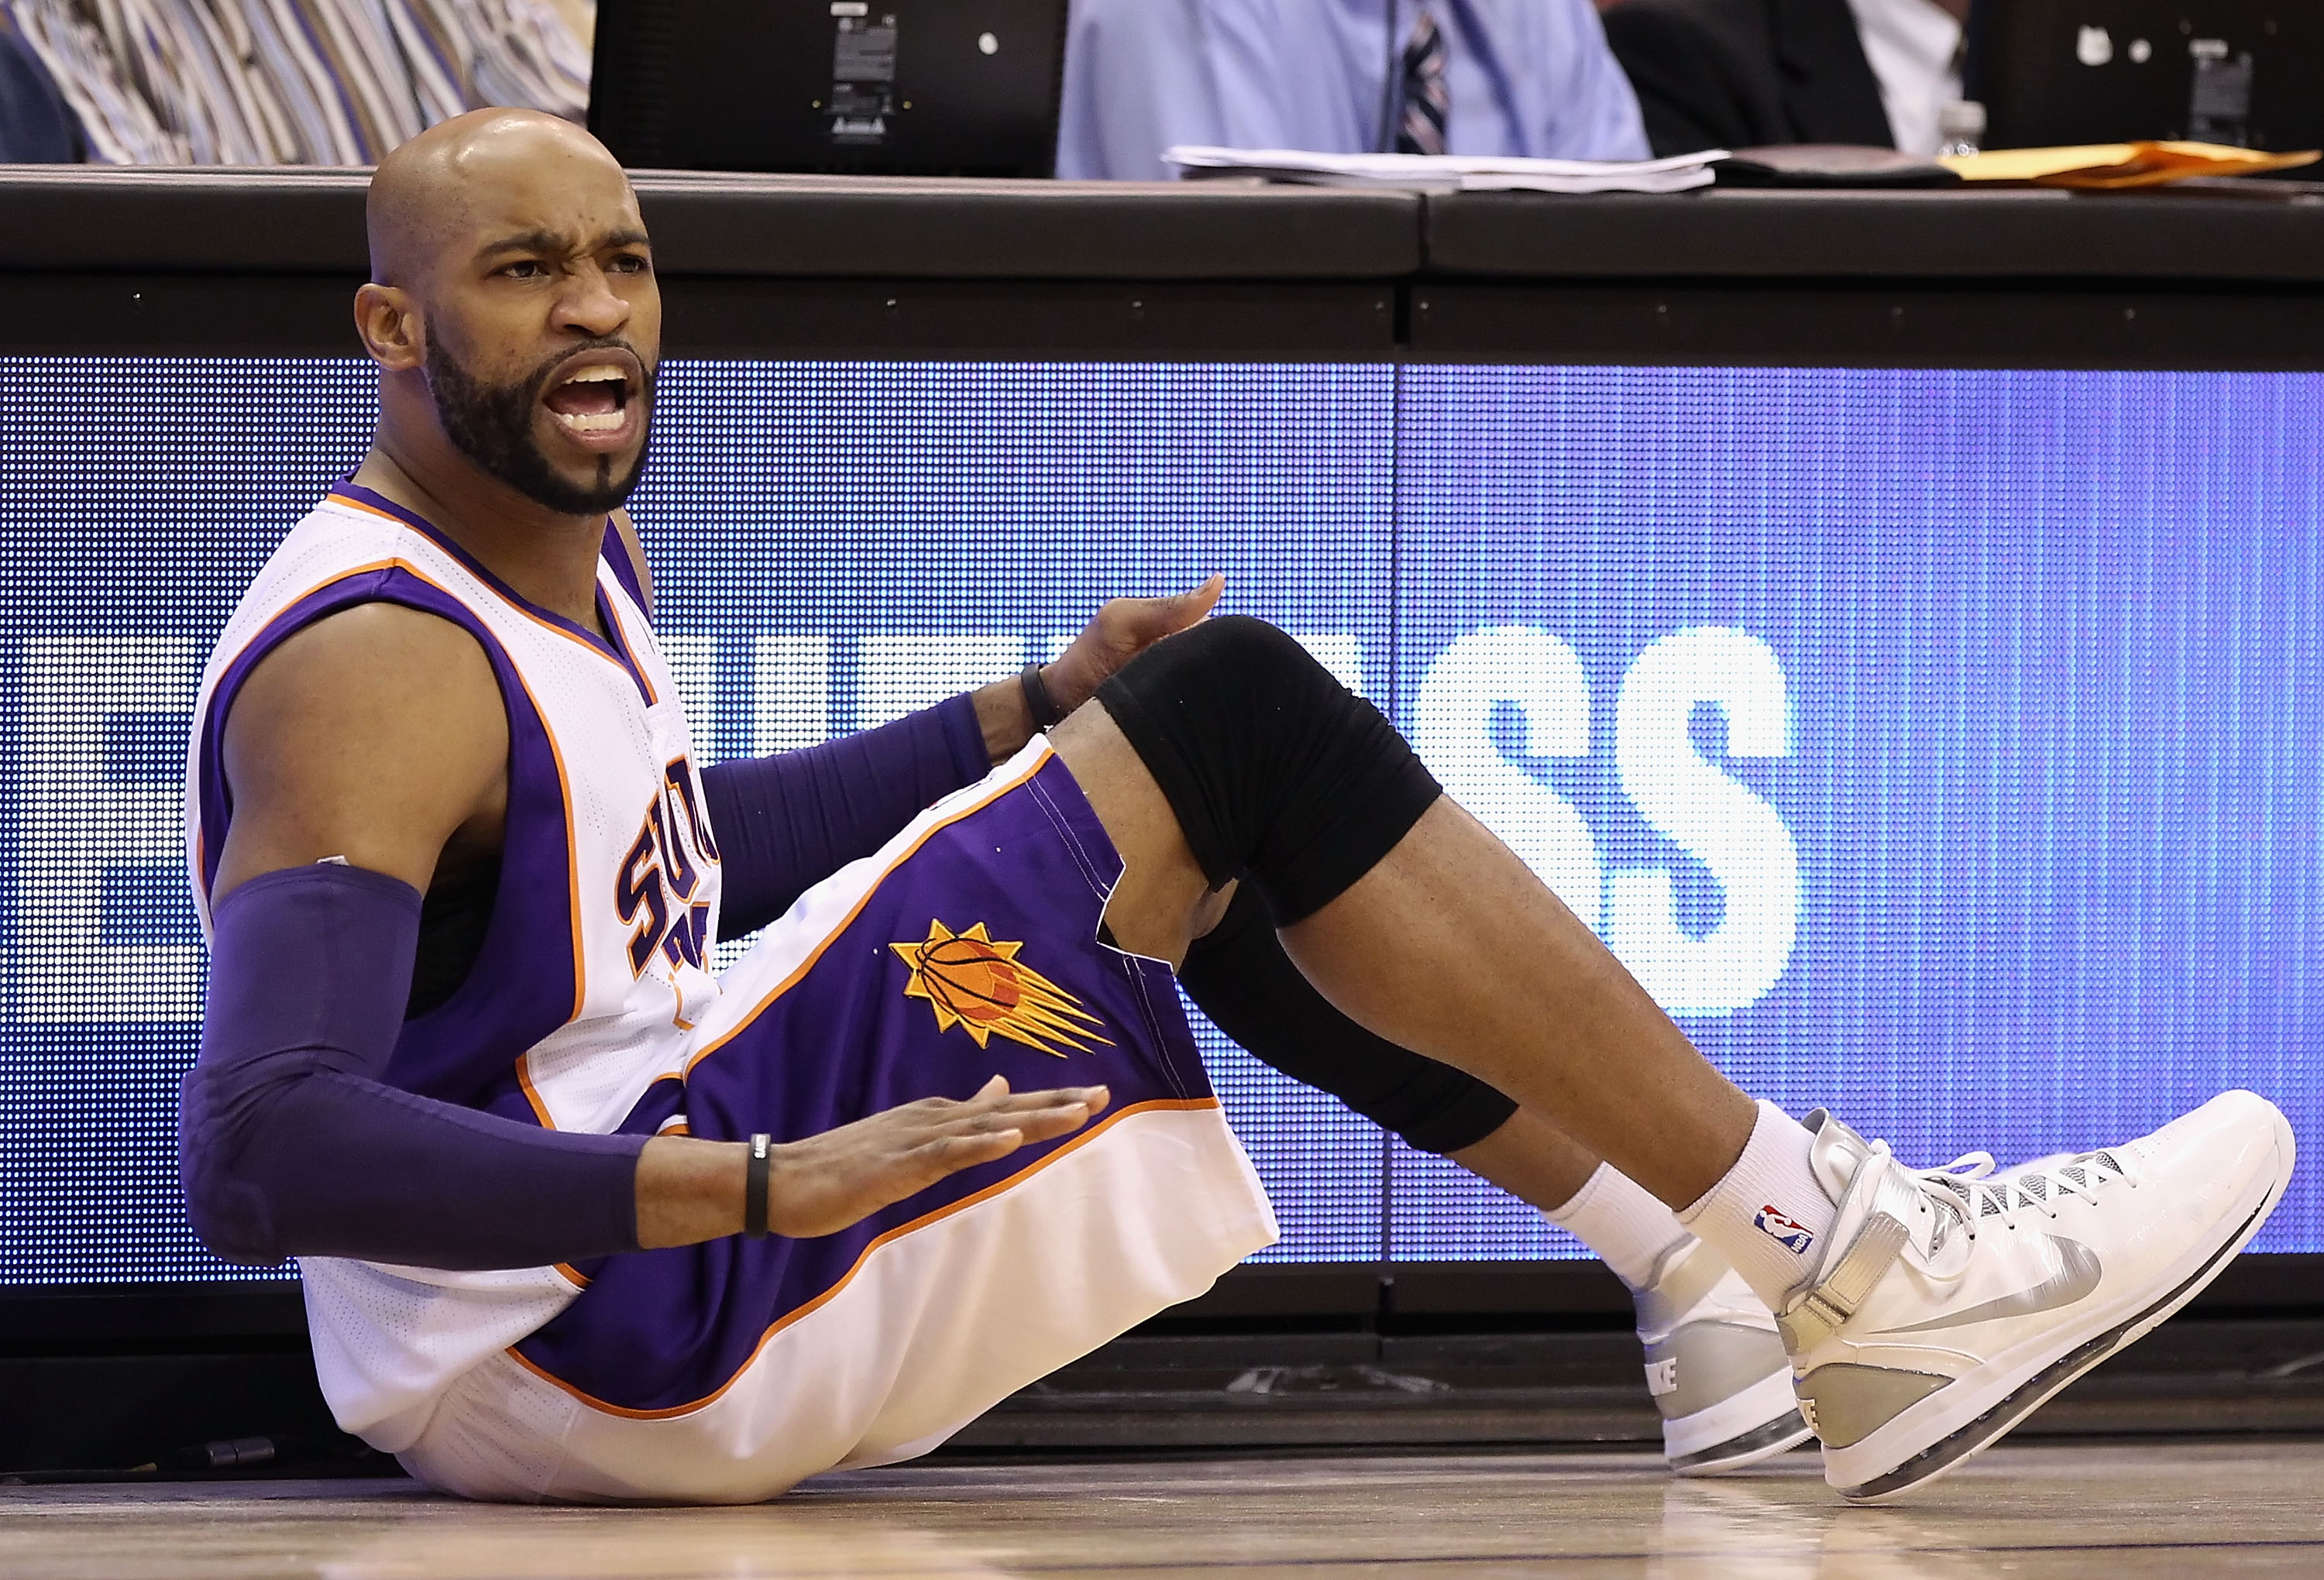 Vinsanity isn't happy with the decision